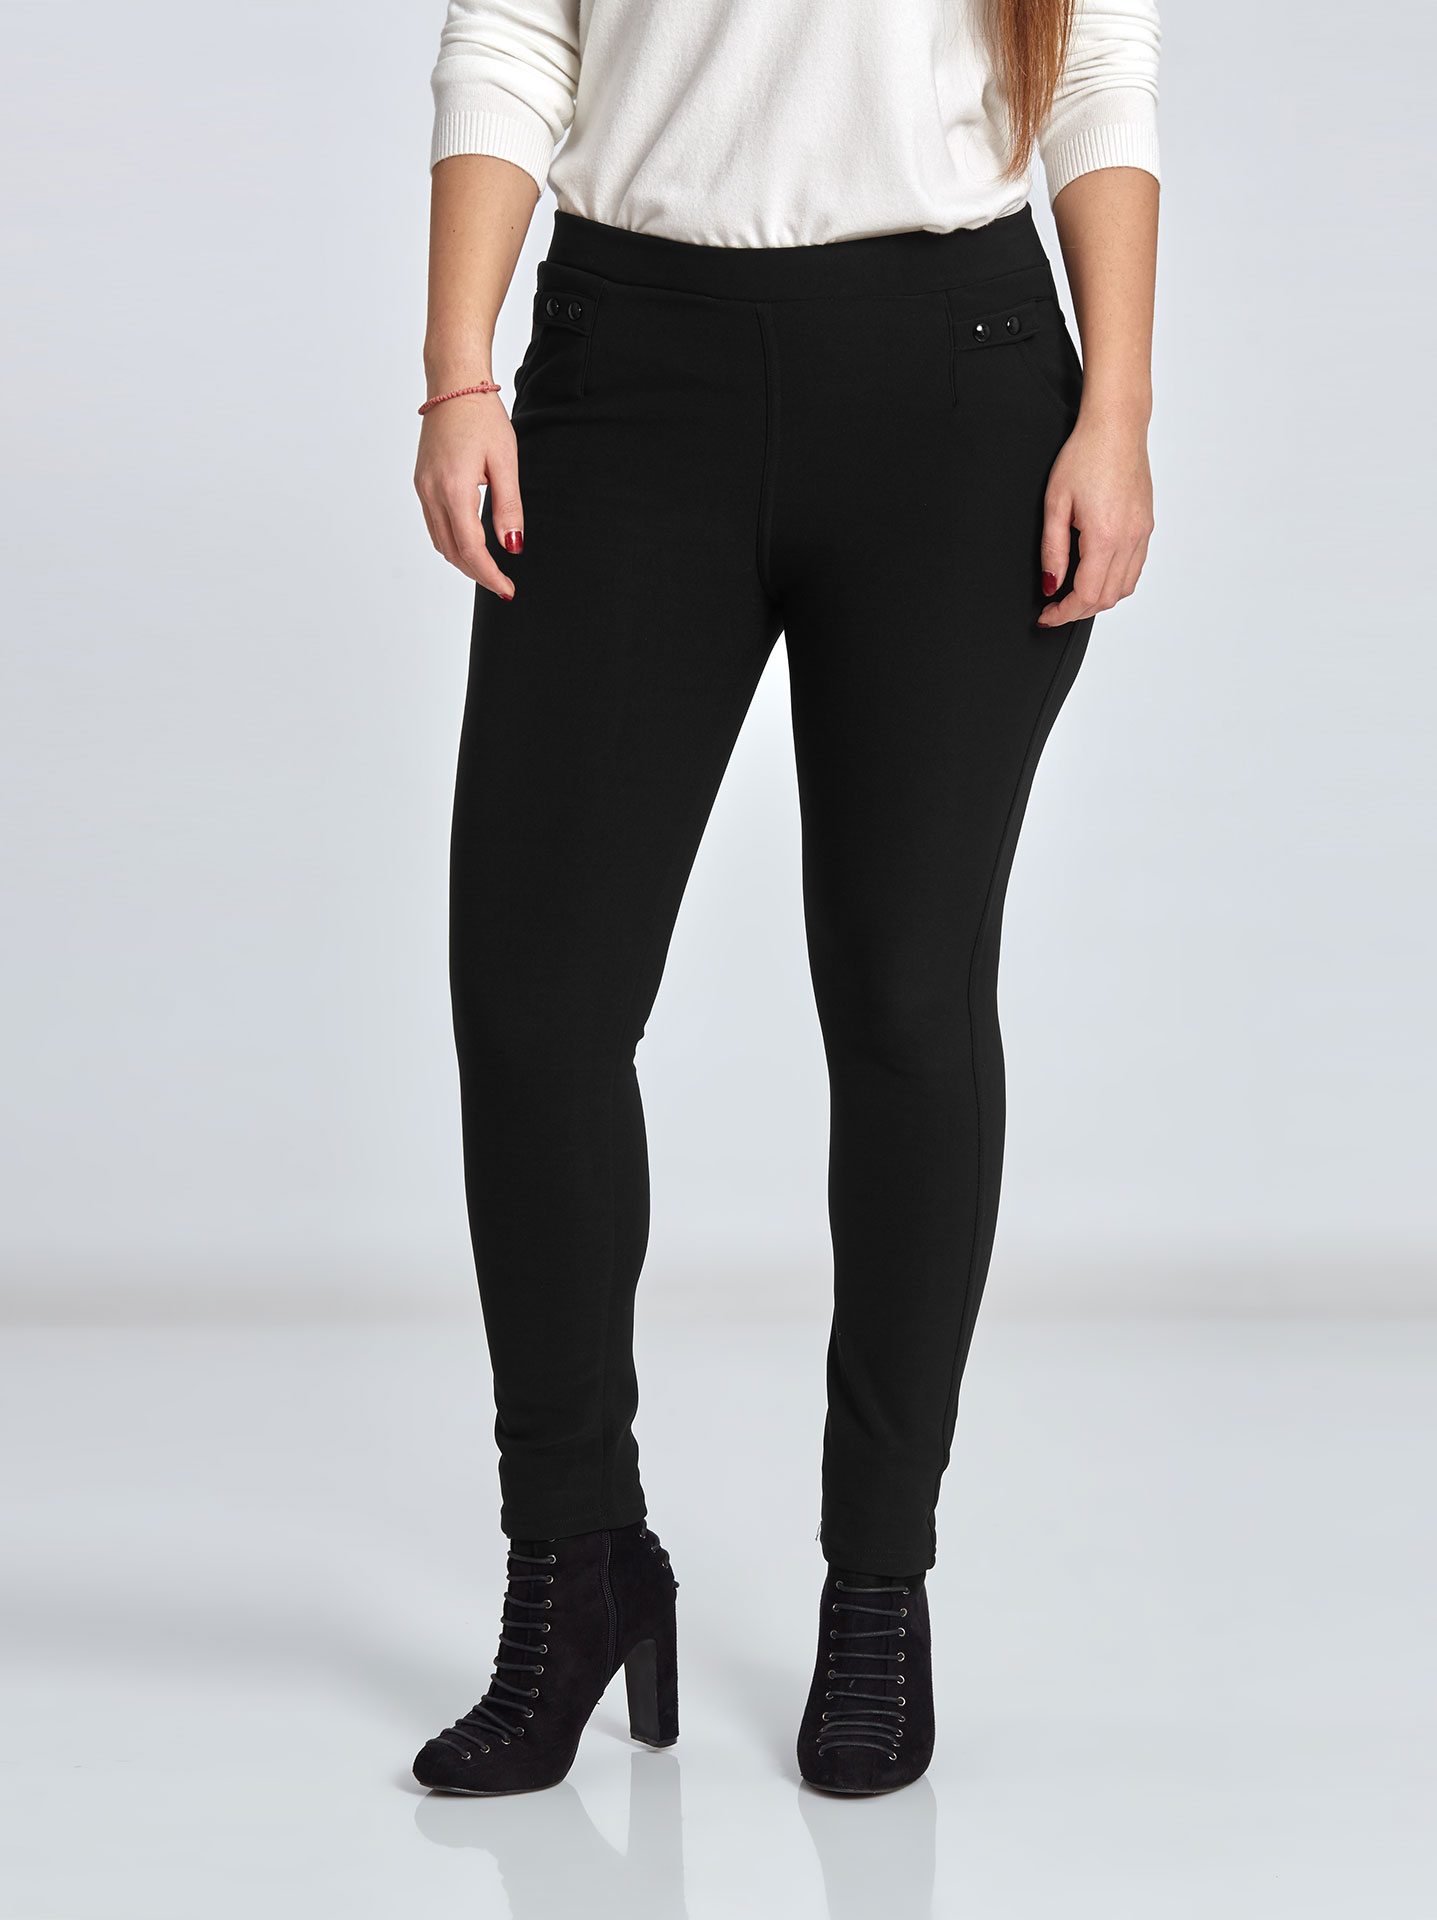 1446544d480 Plus size leggings with pockets in black